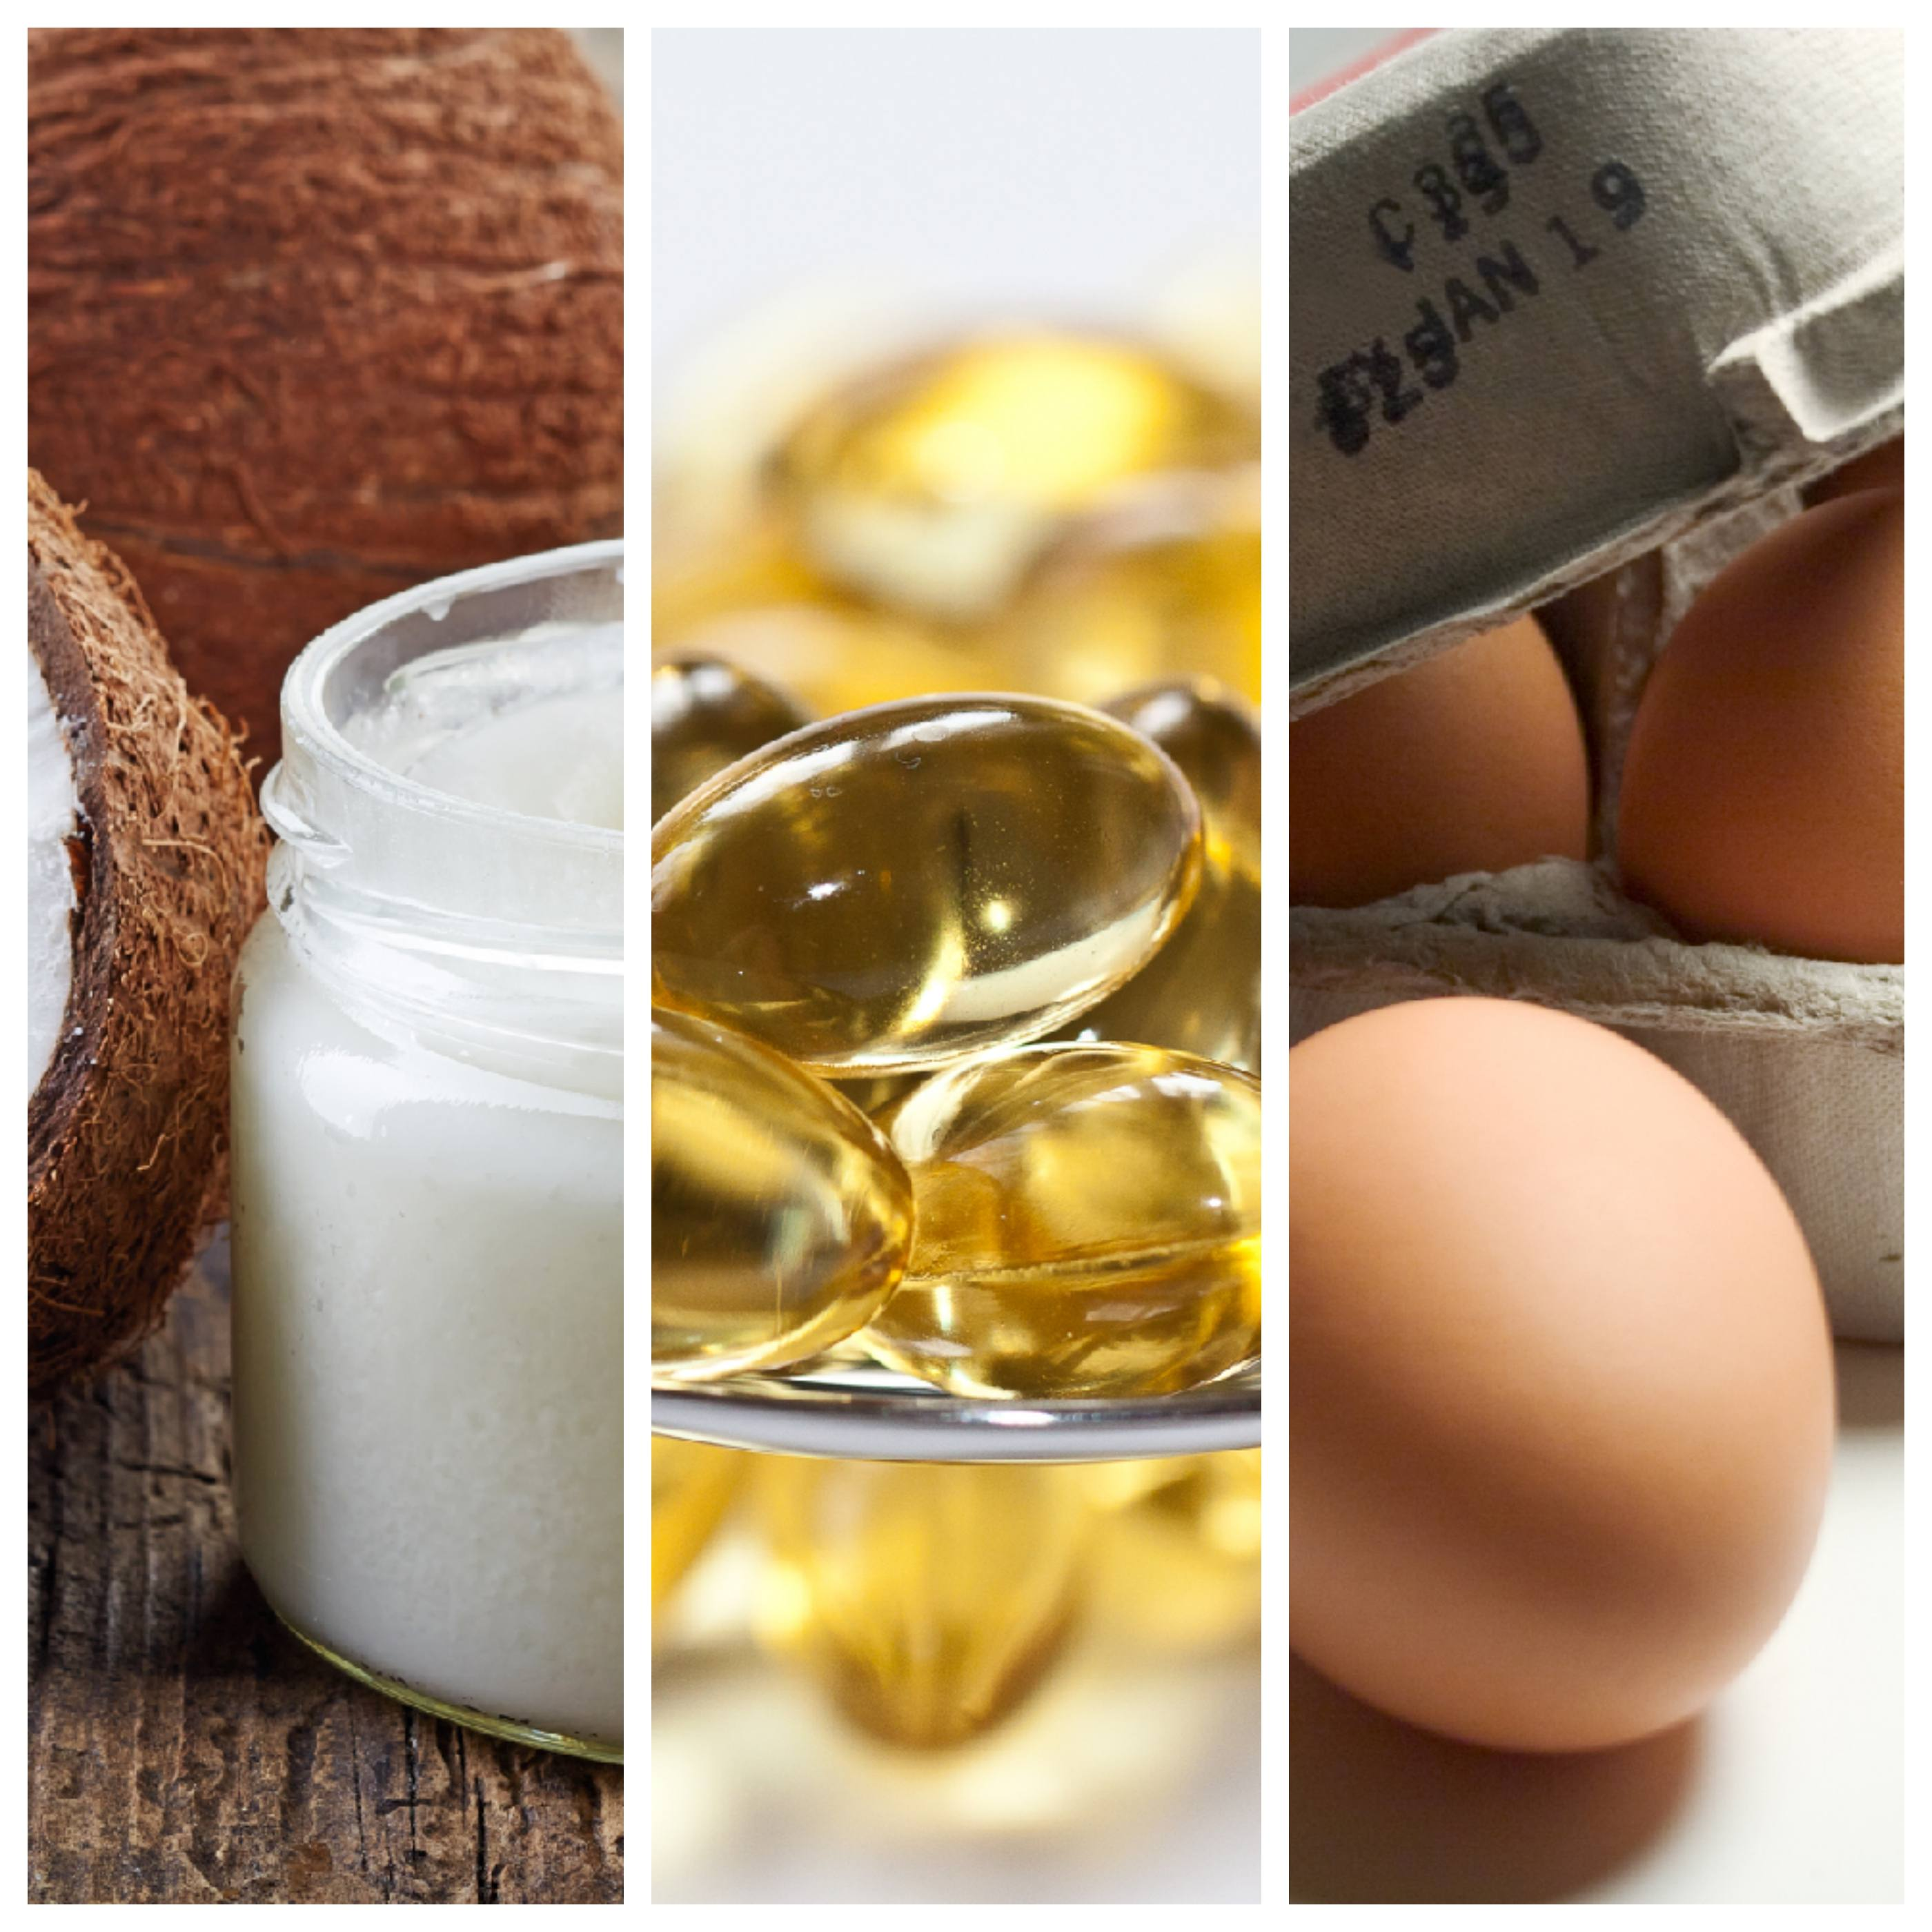 a collage of coconut oil, omega-3 supplements and eggs, depicting heart-healthy diet myths